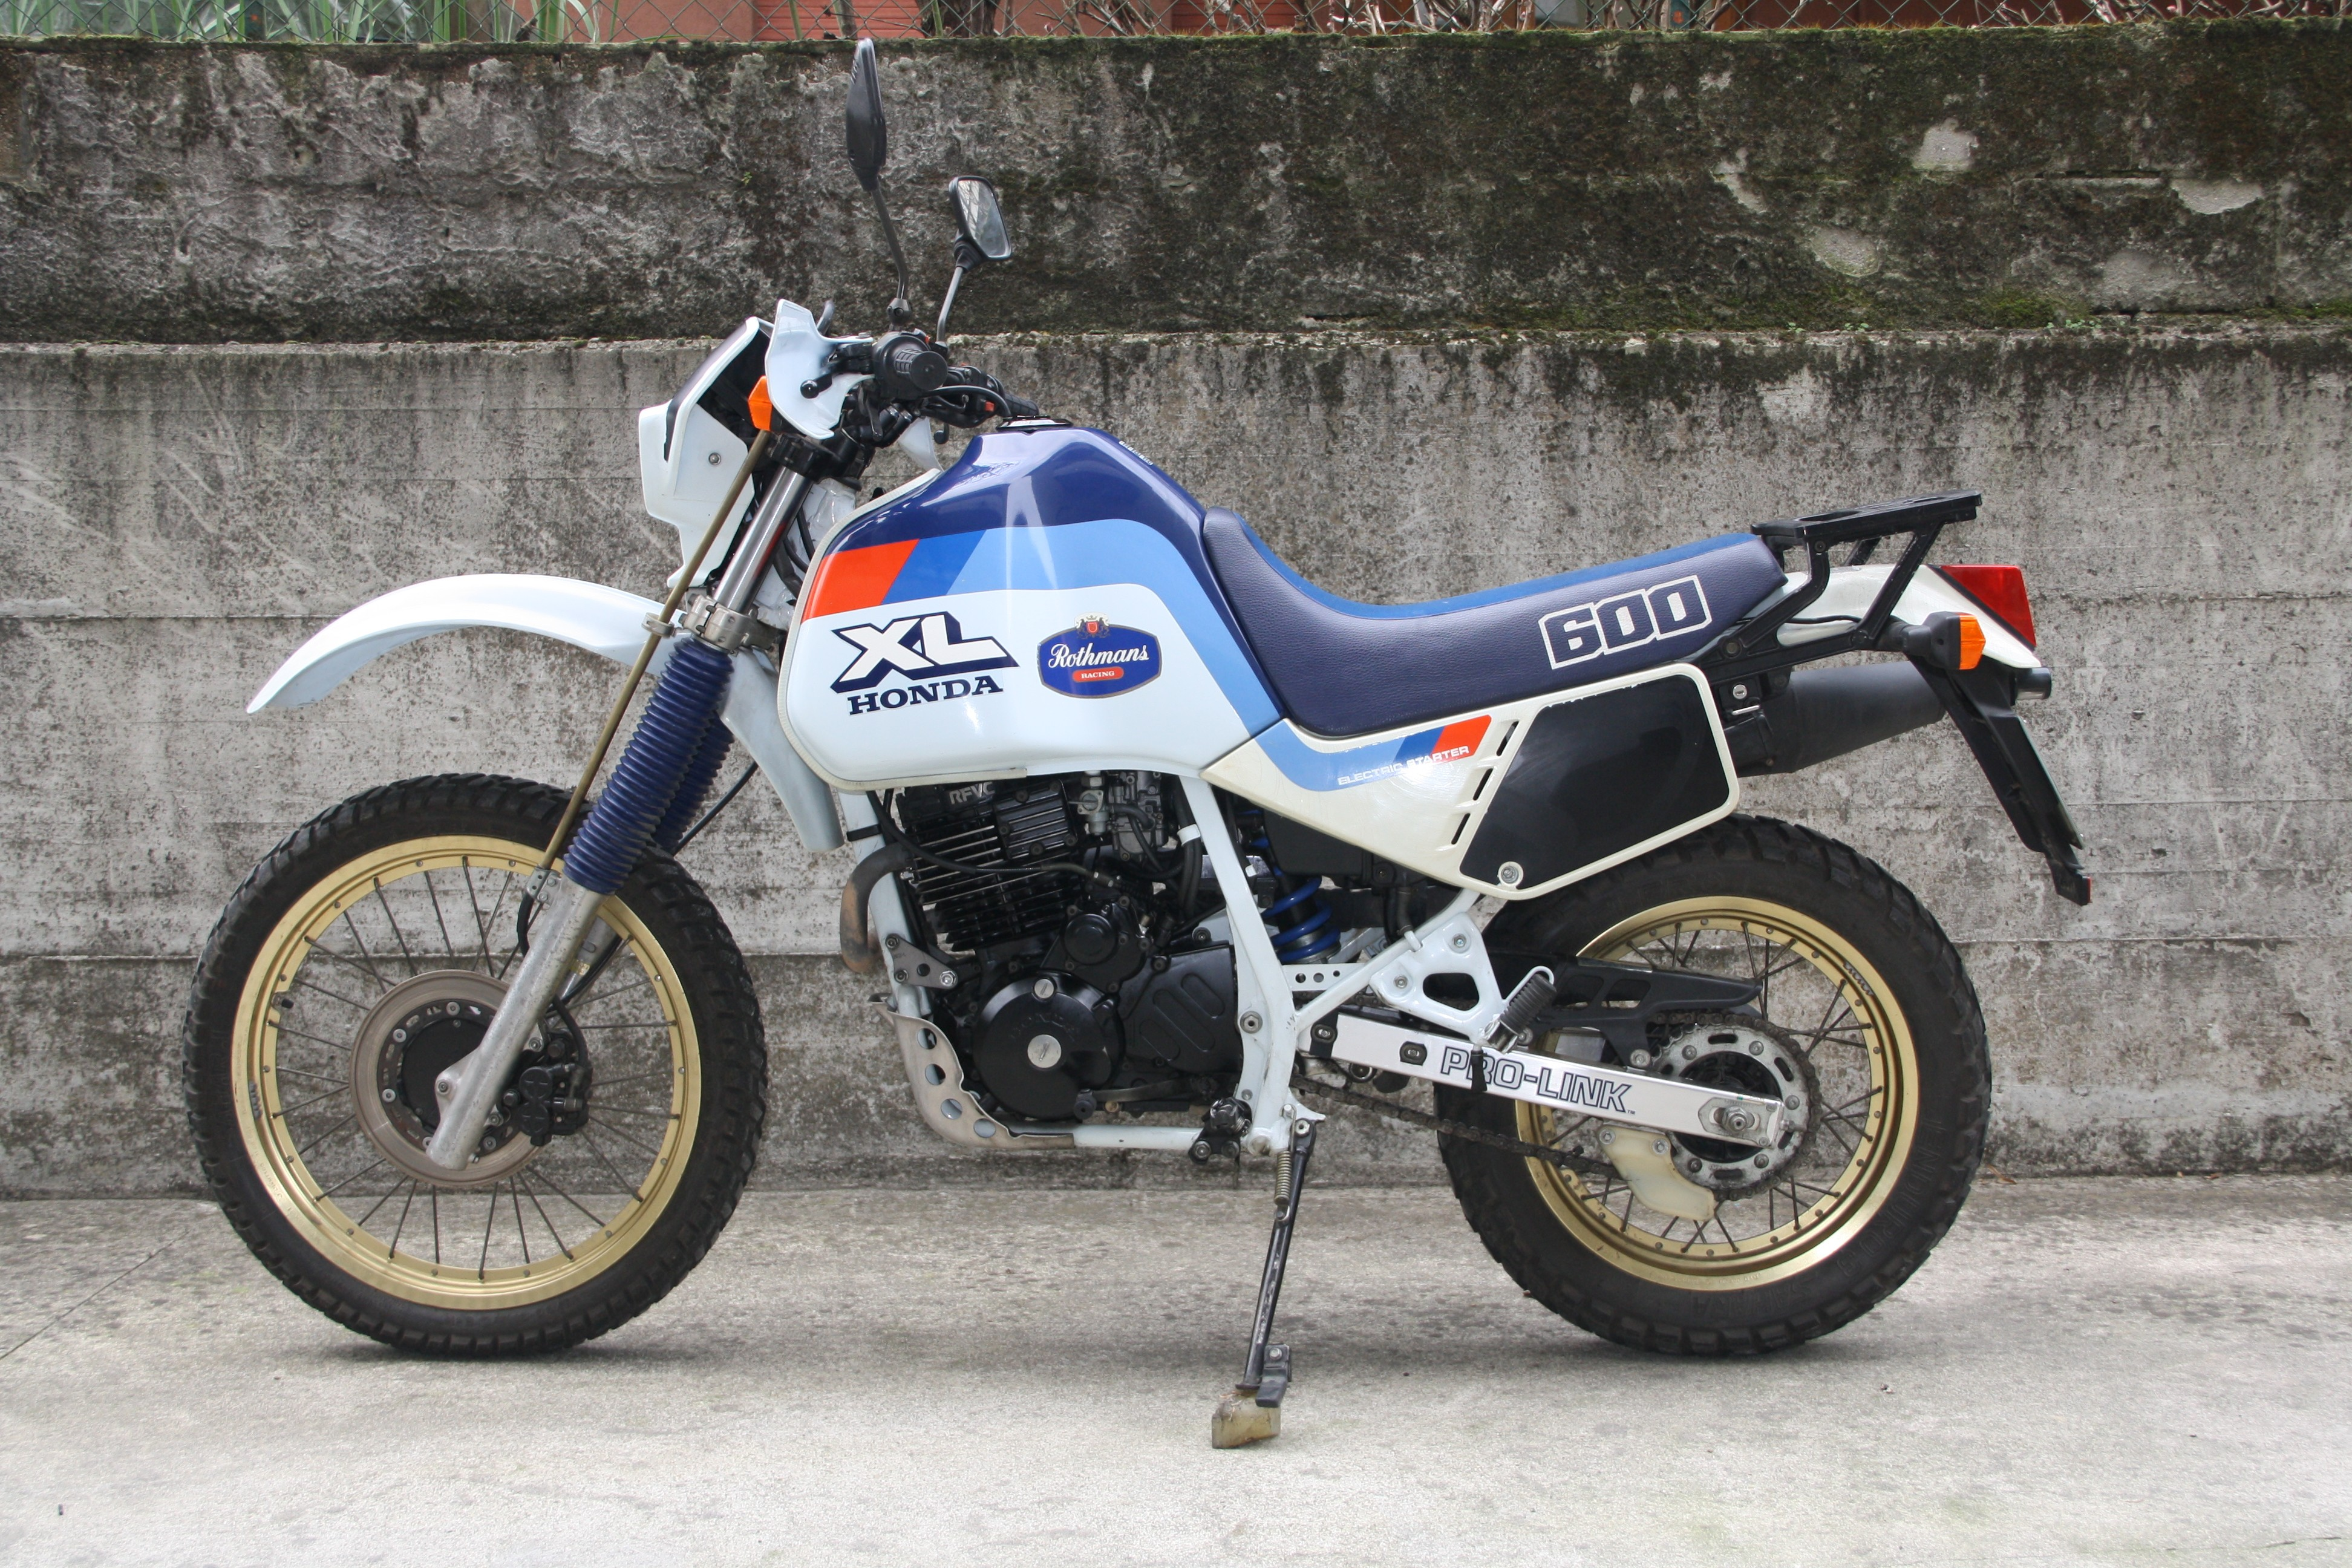 Honda Xl 600 Lm 1987 From Bradar